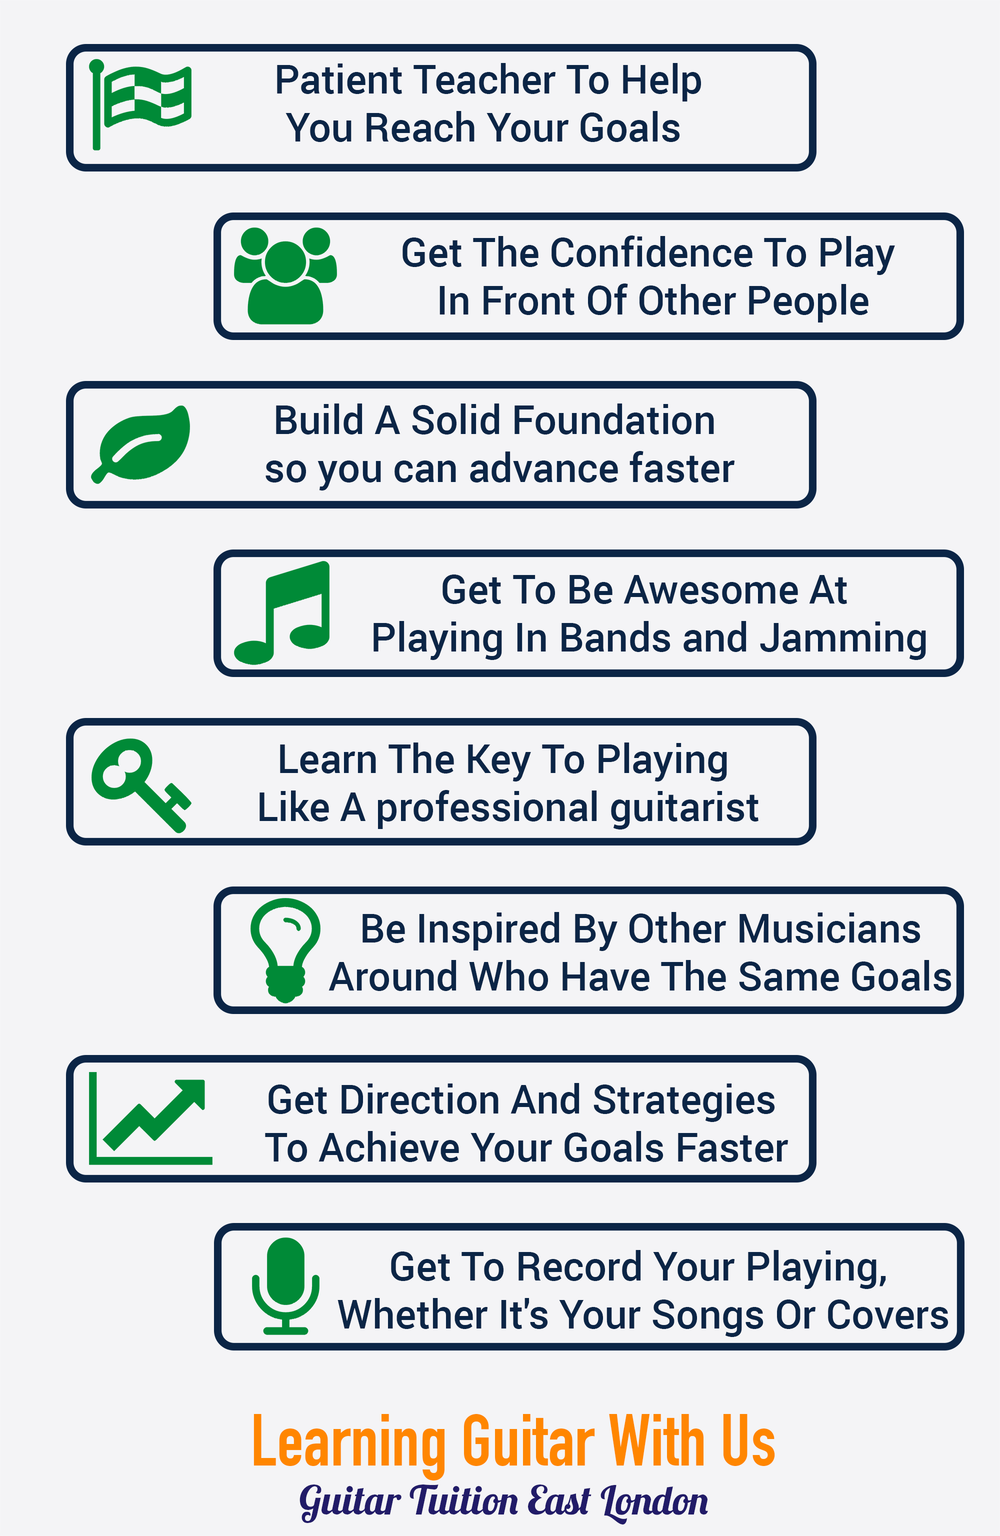 Benefits of getting Guitar Lessons for beginners London with Us.